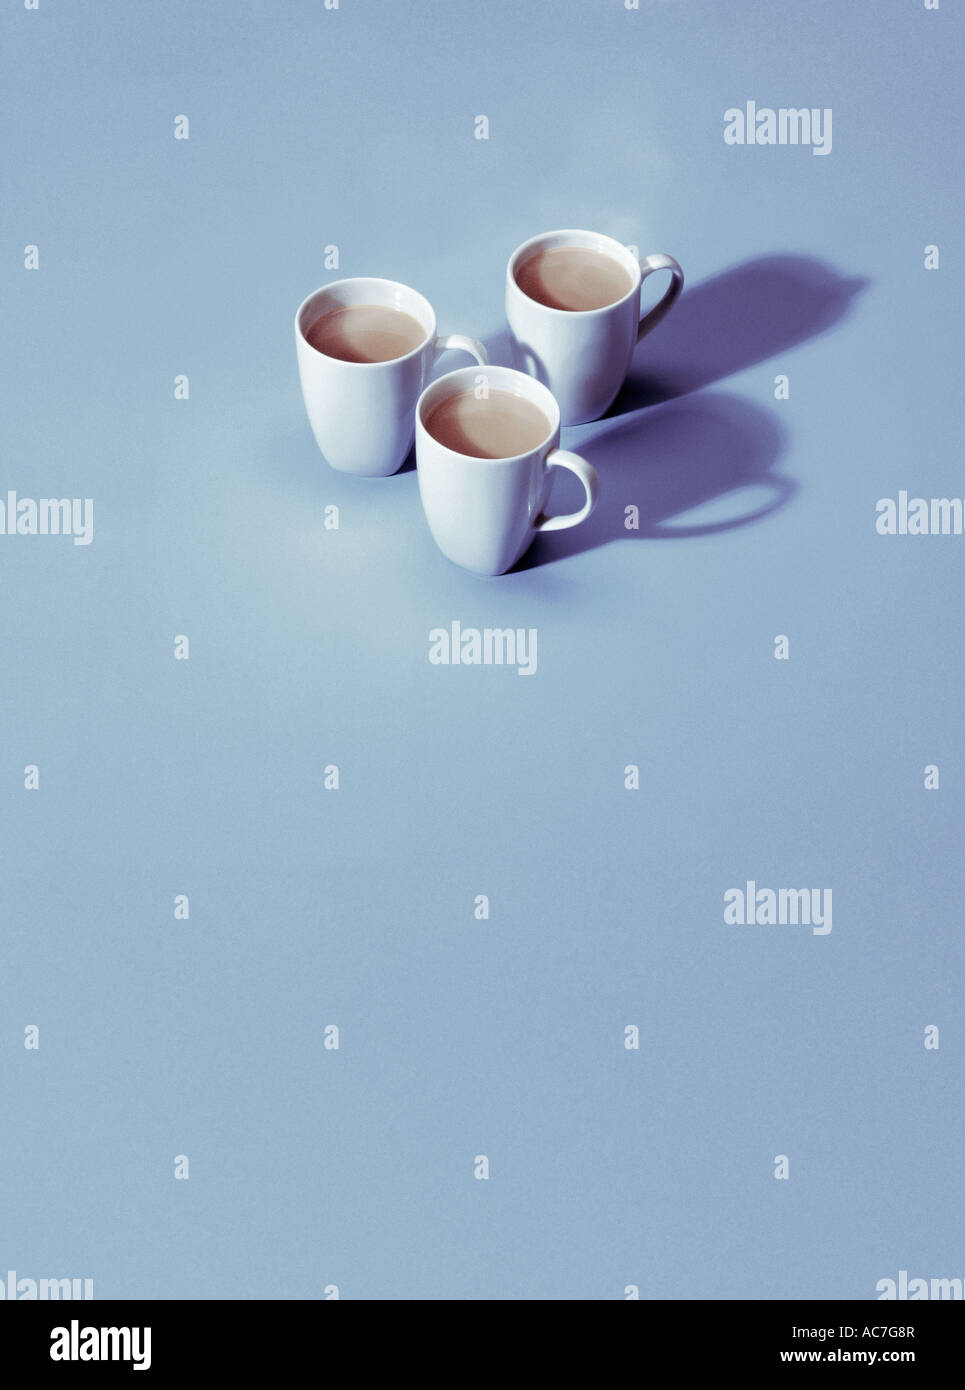 Three white mugs on a pale blue background - Stock Image